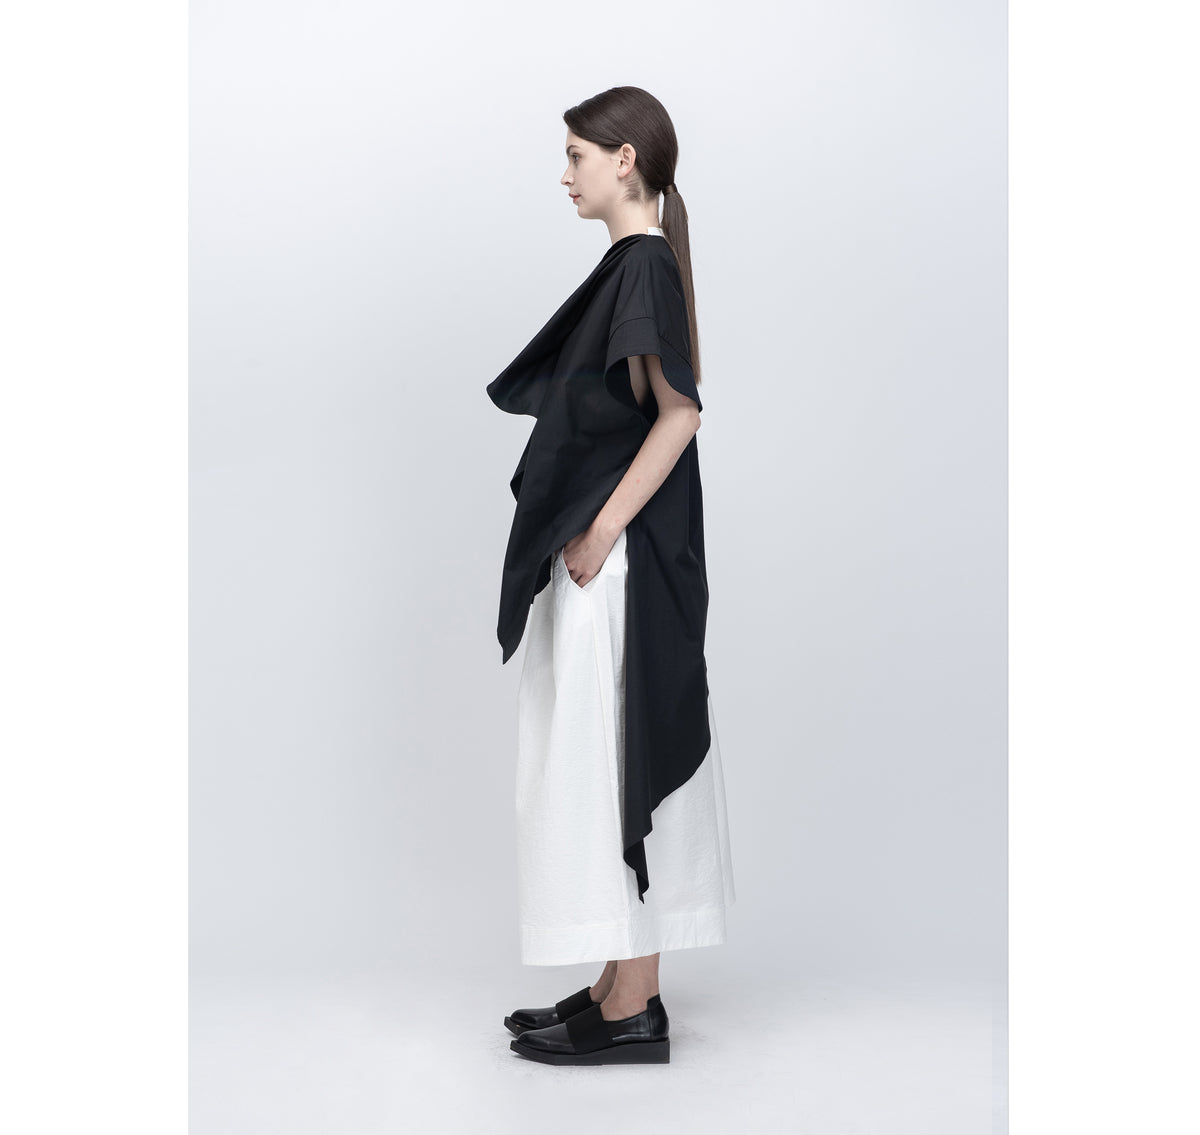 PERCEPTION Asymmetrical Long Shirt - Preorder